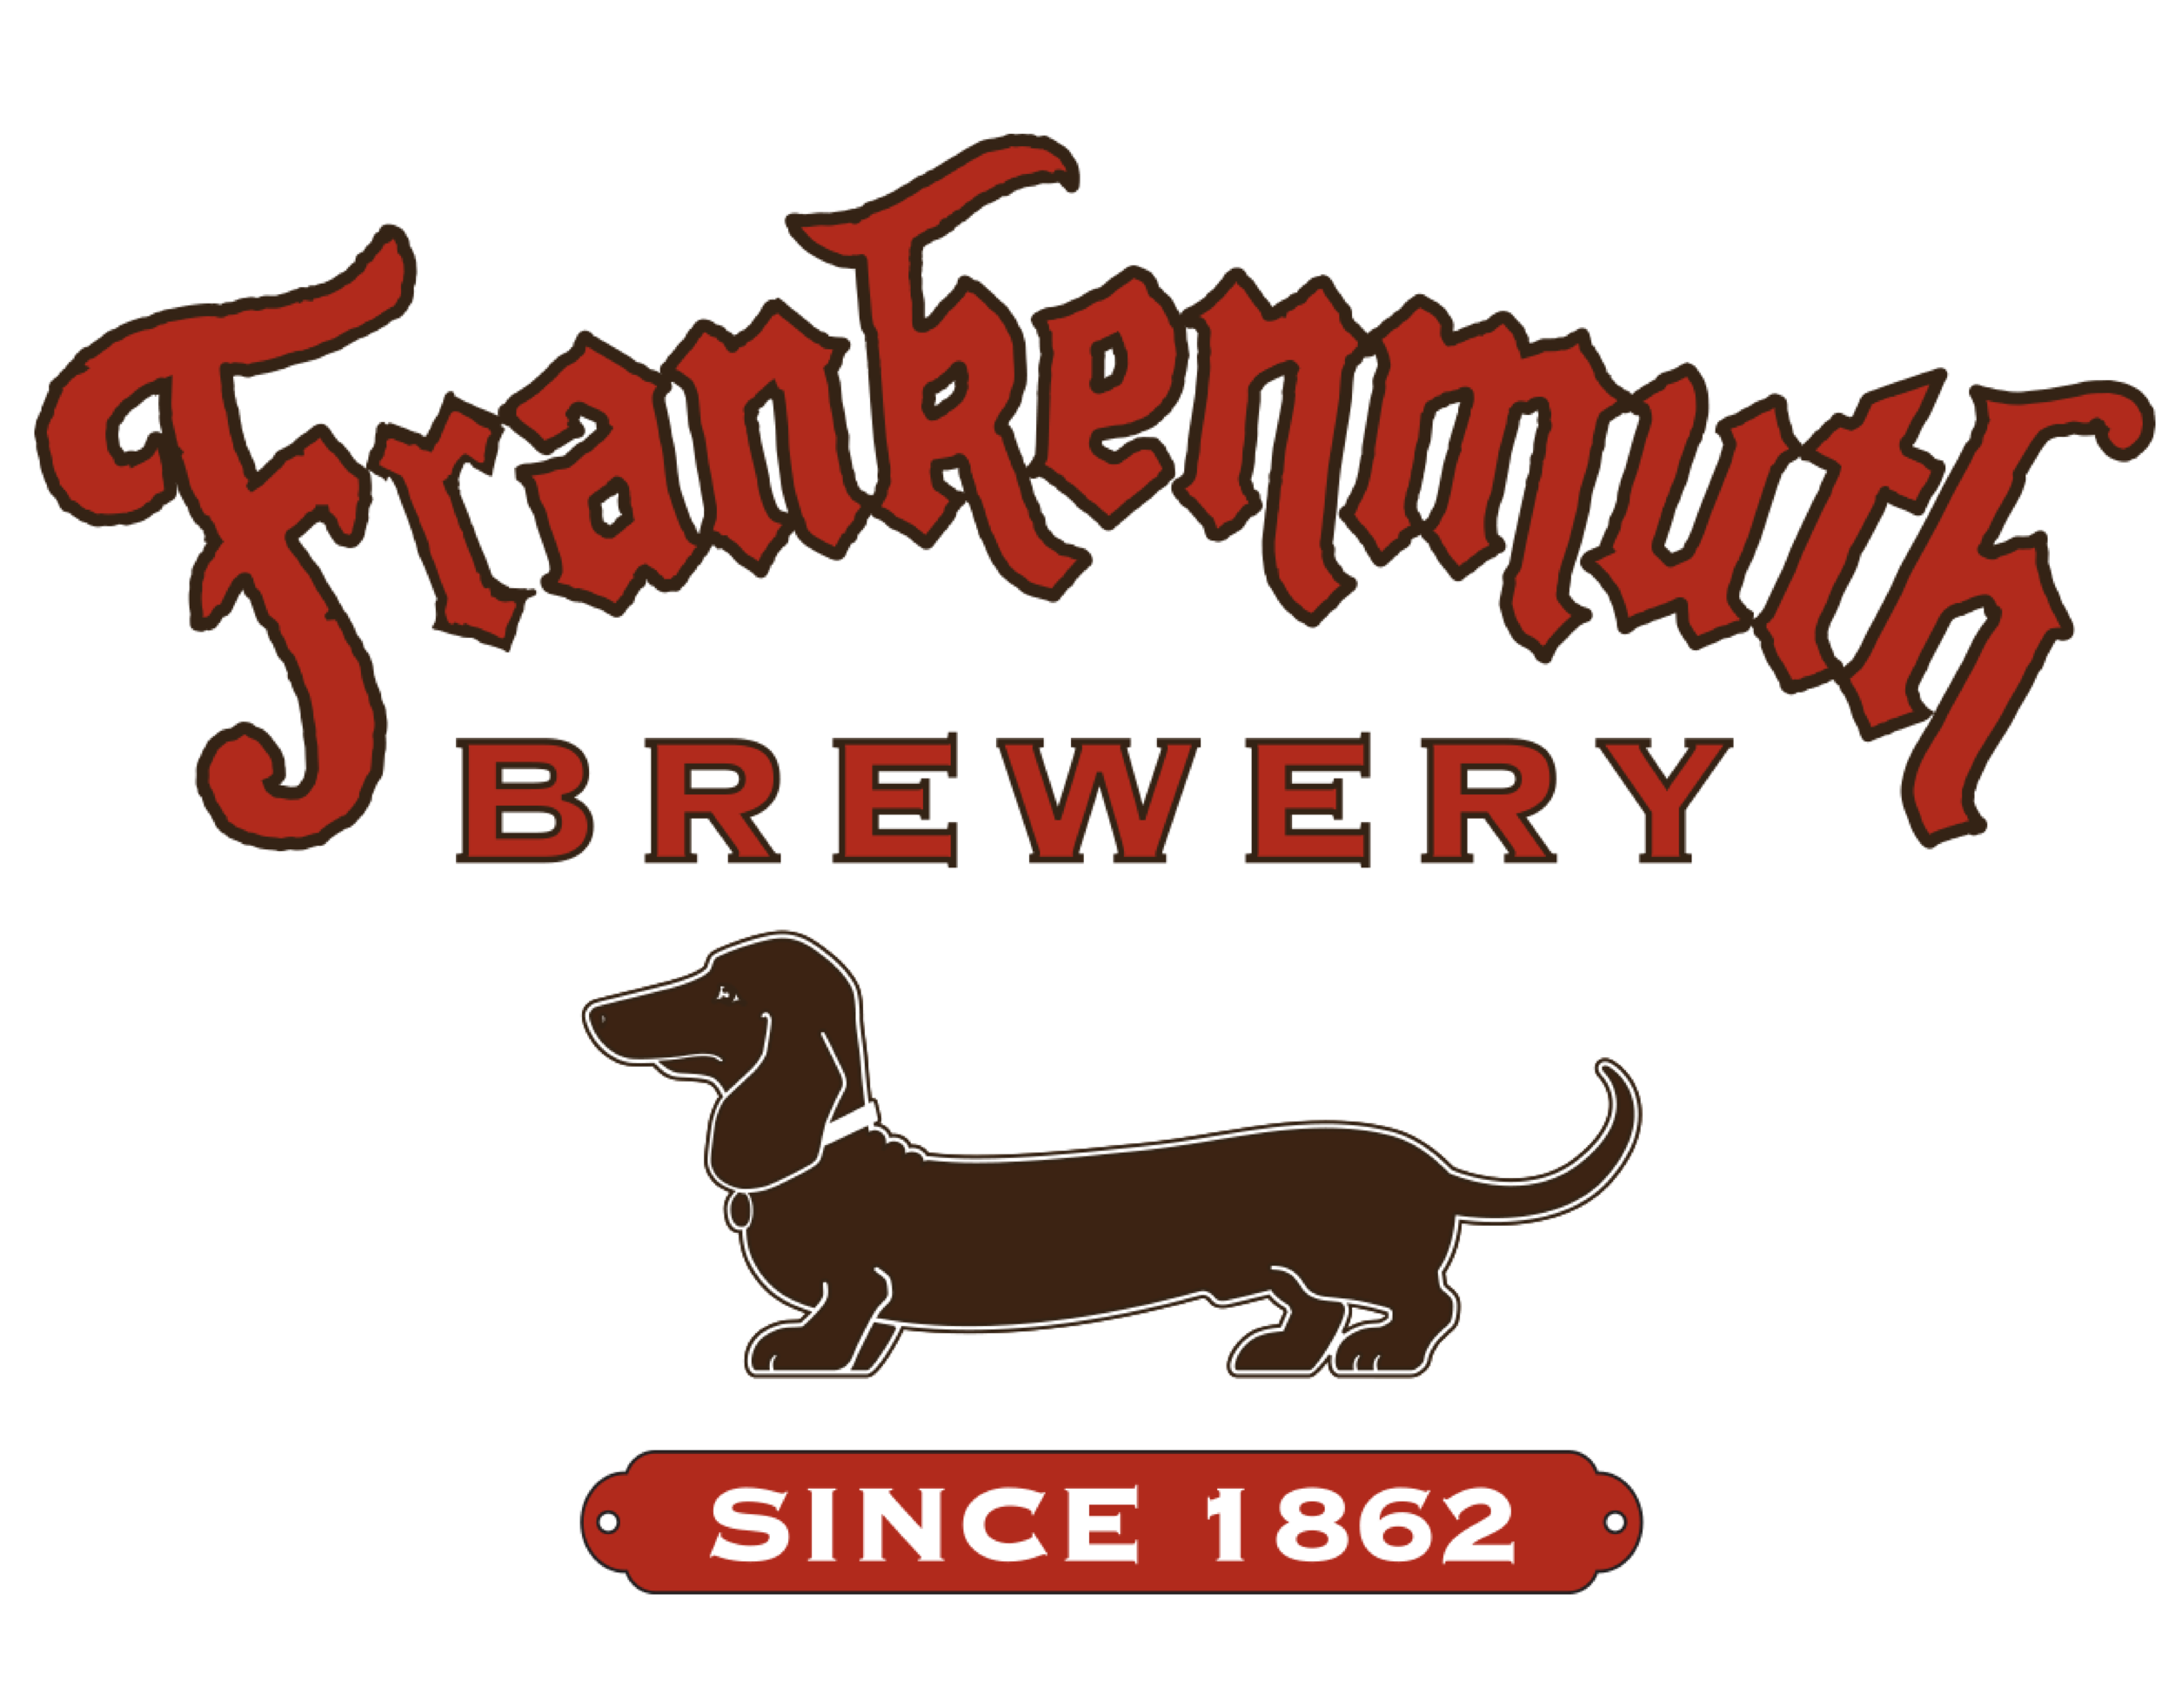 Frankenmuth Brewery logo. Links to Frankenmuth Brewery website.